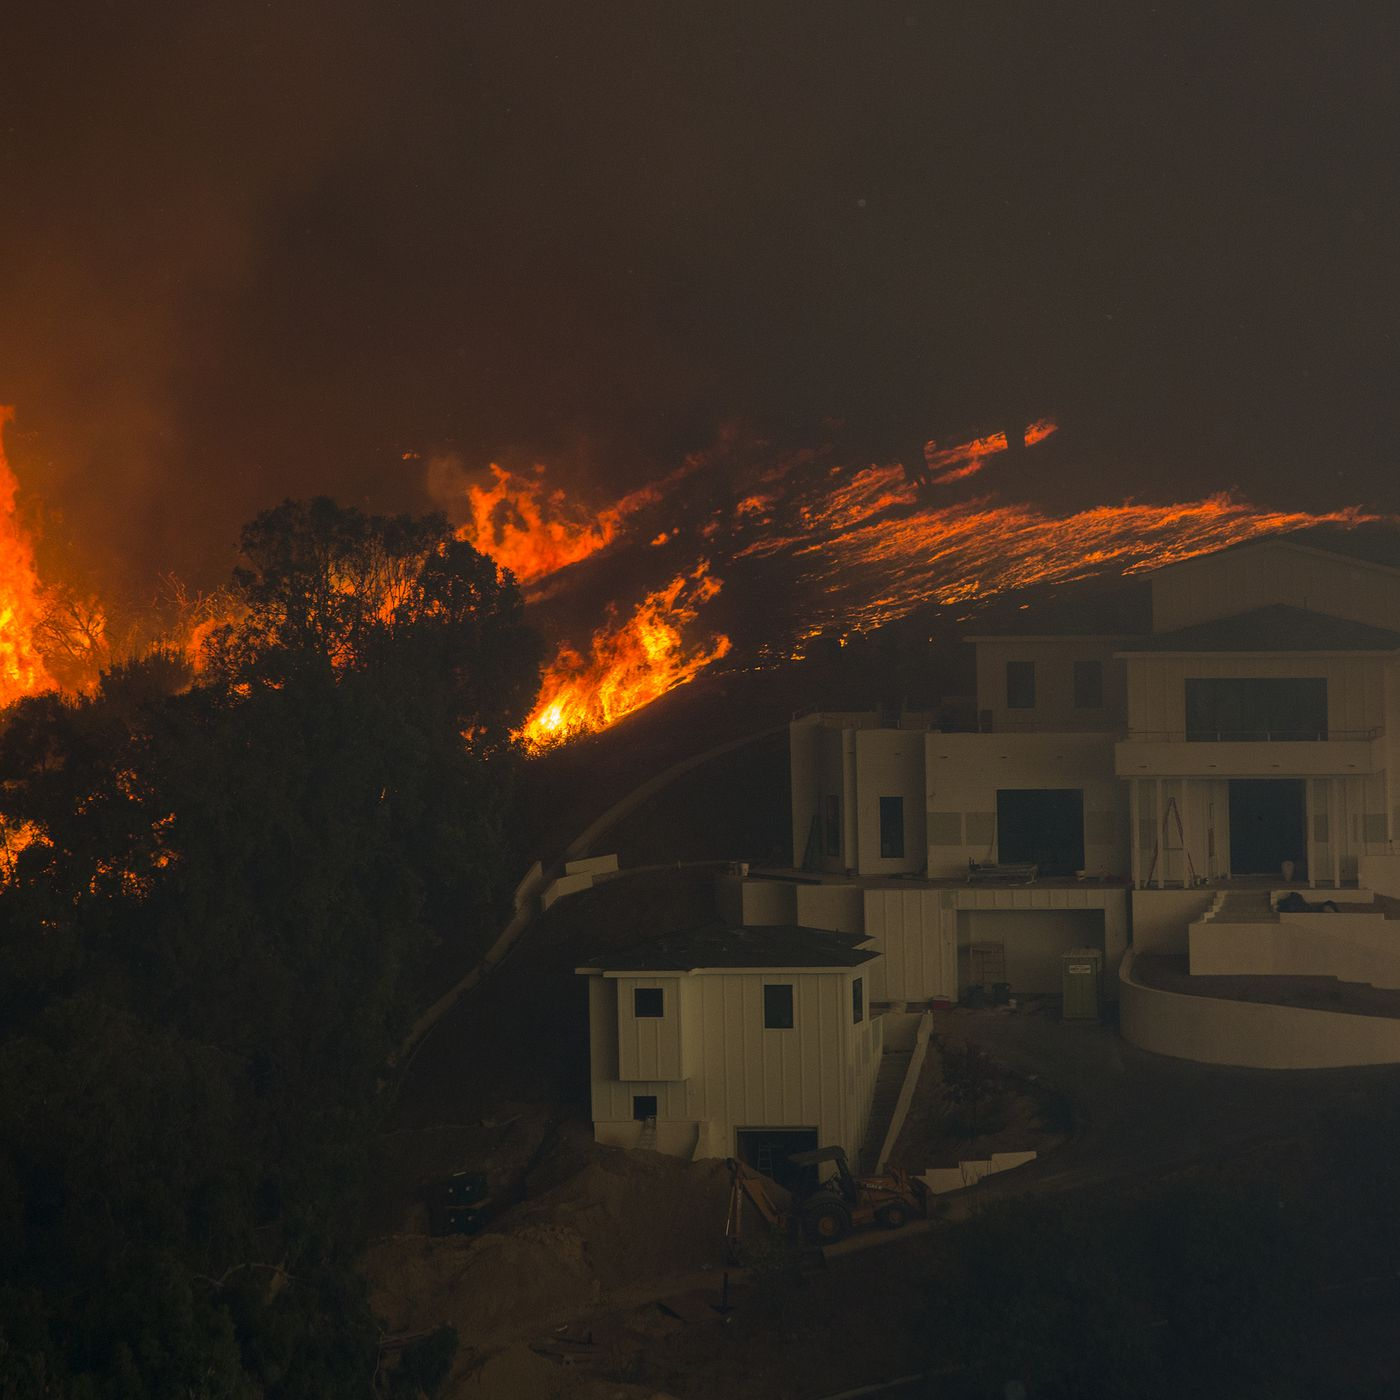 woolsey fire latest example of california's age of